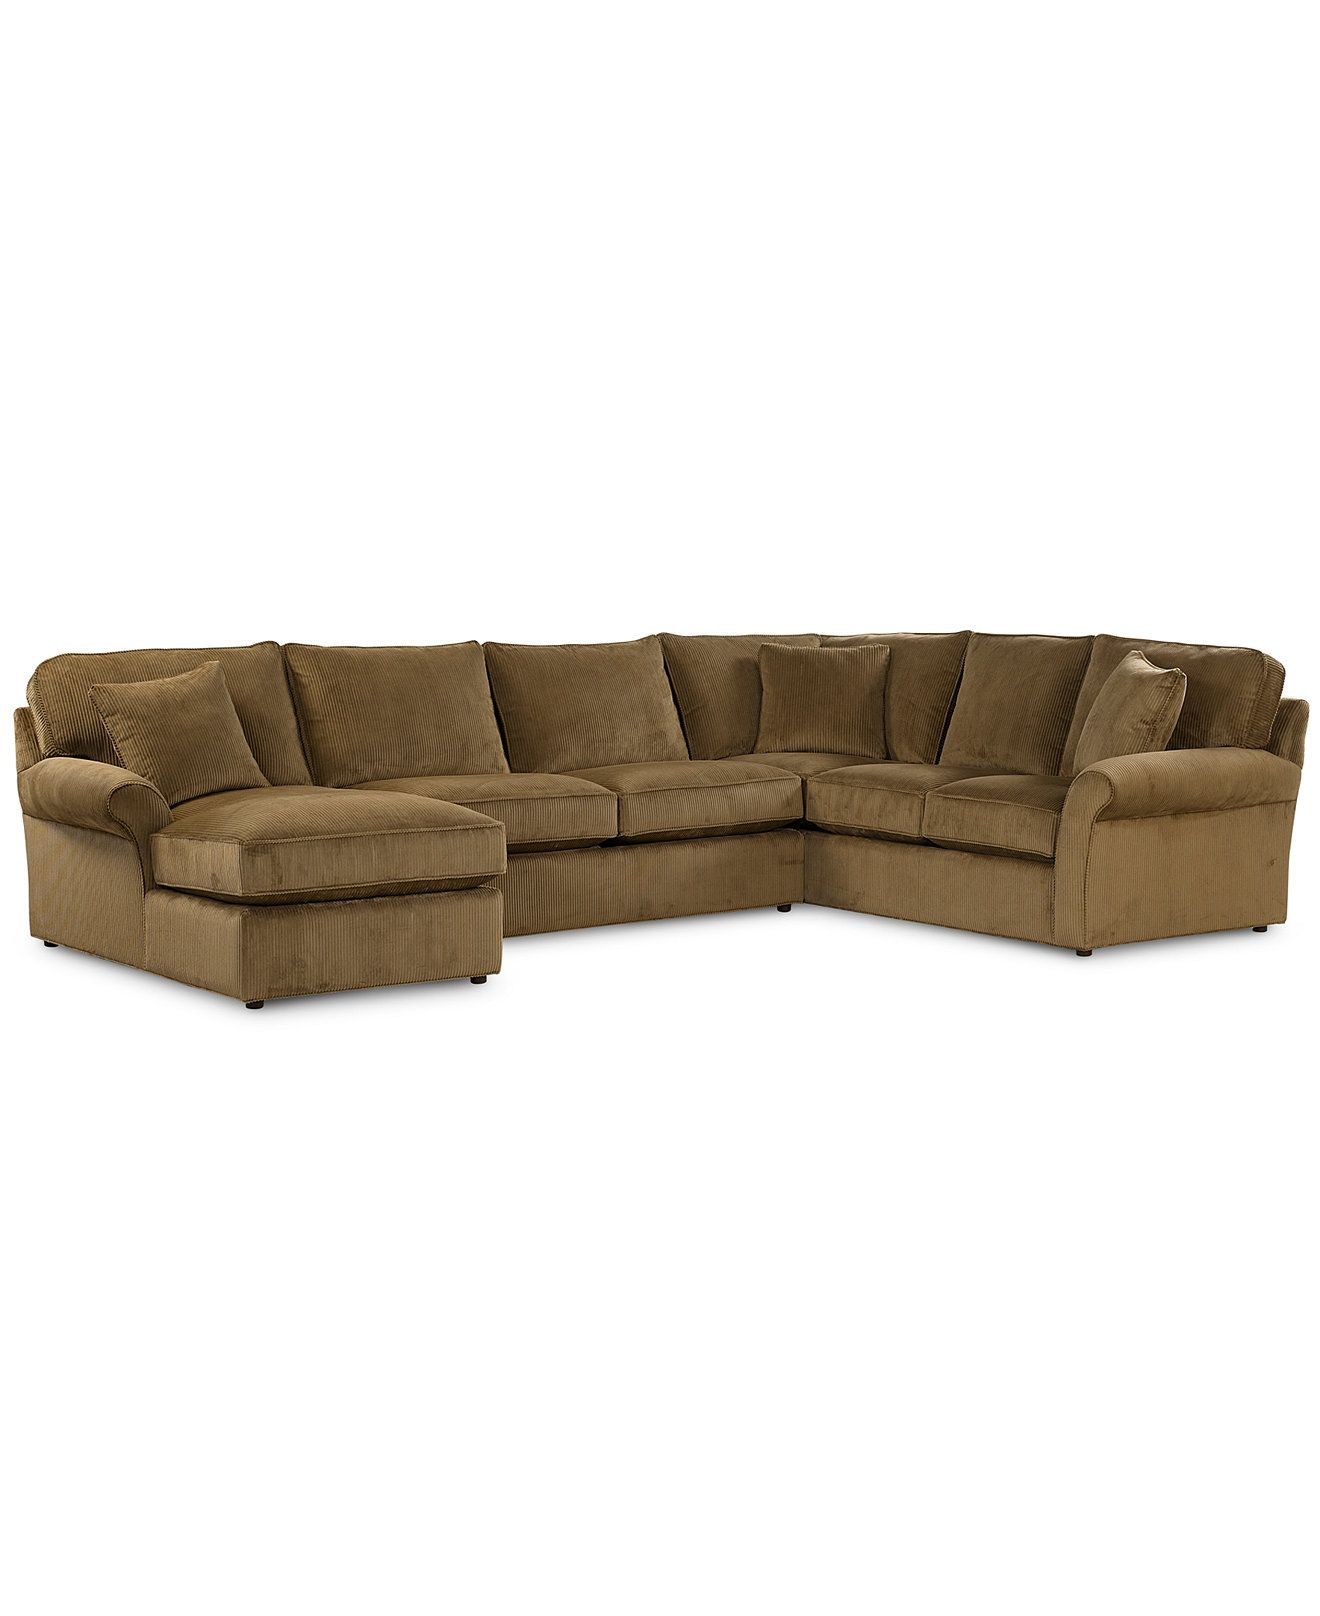 Virtual Fabric 3 Piece Sectional Sofa (Chaise, Loveseat And One Arm Sofa)   Sectional  Sofas   Furniture   Macyu0027s